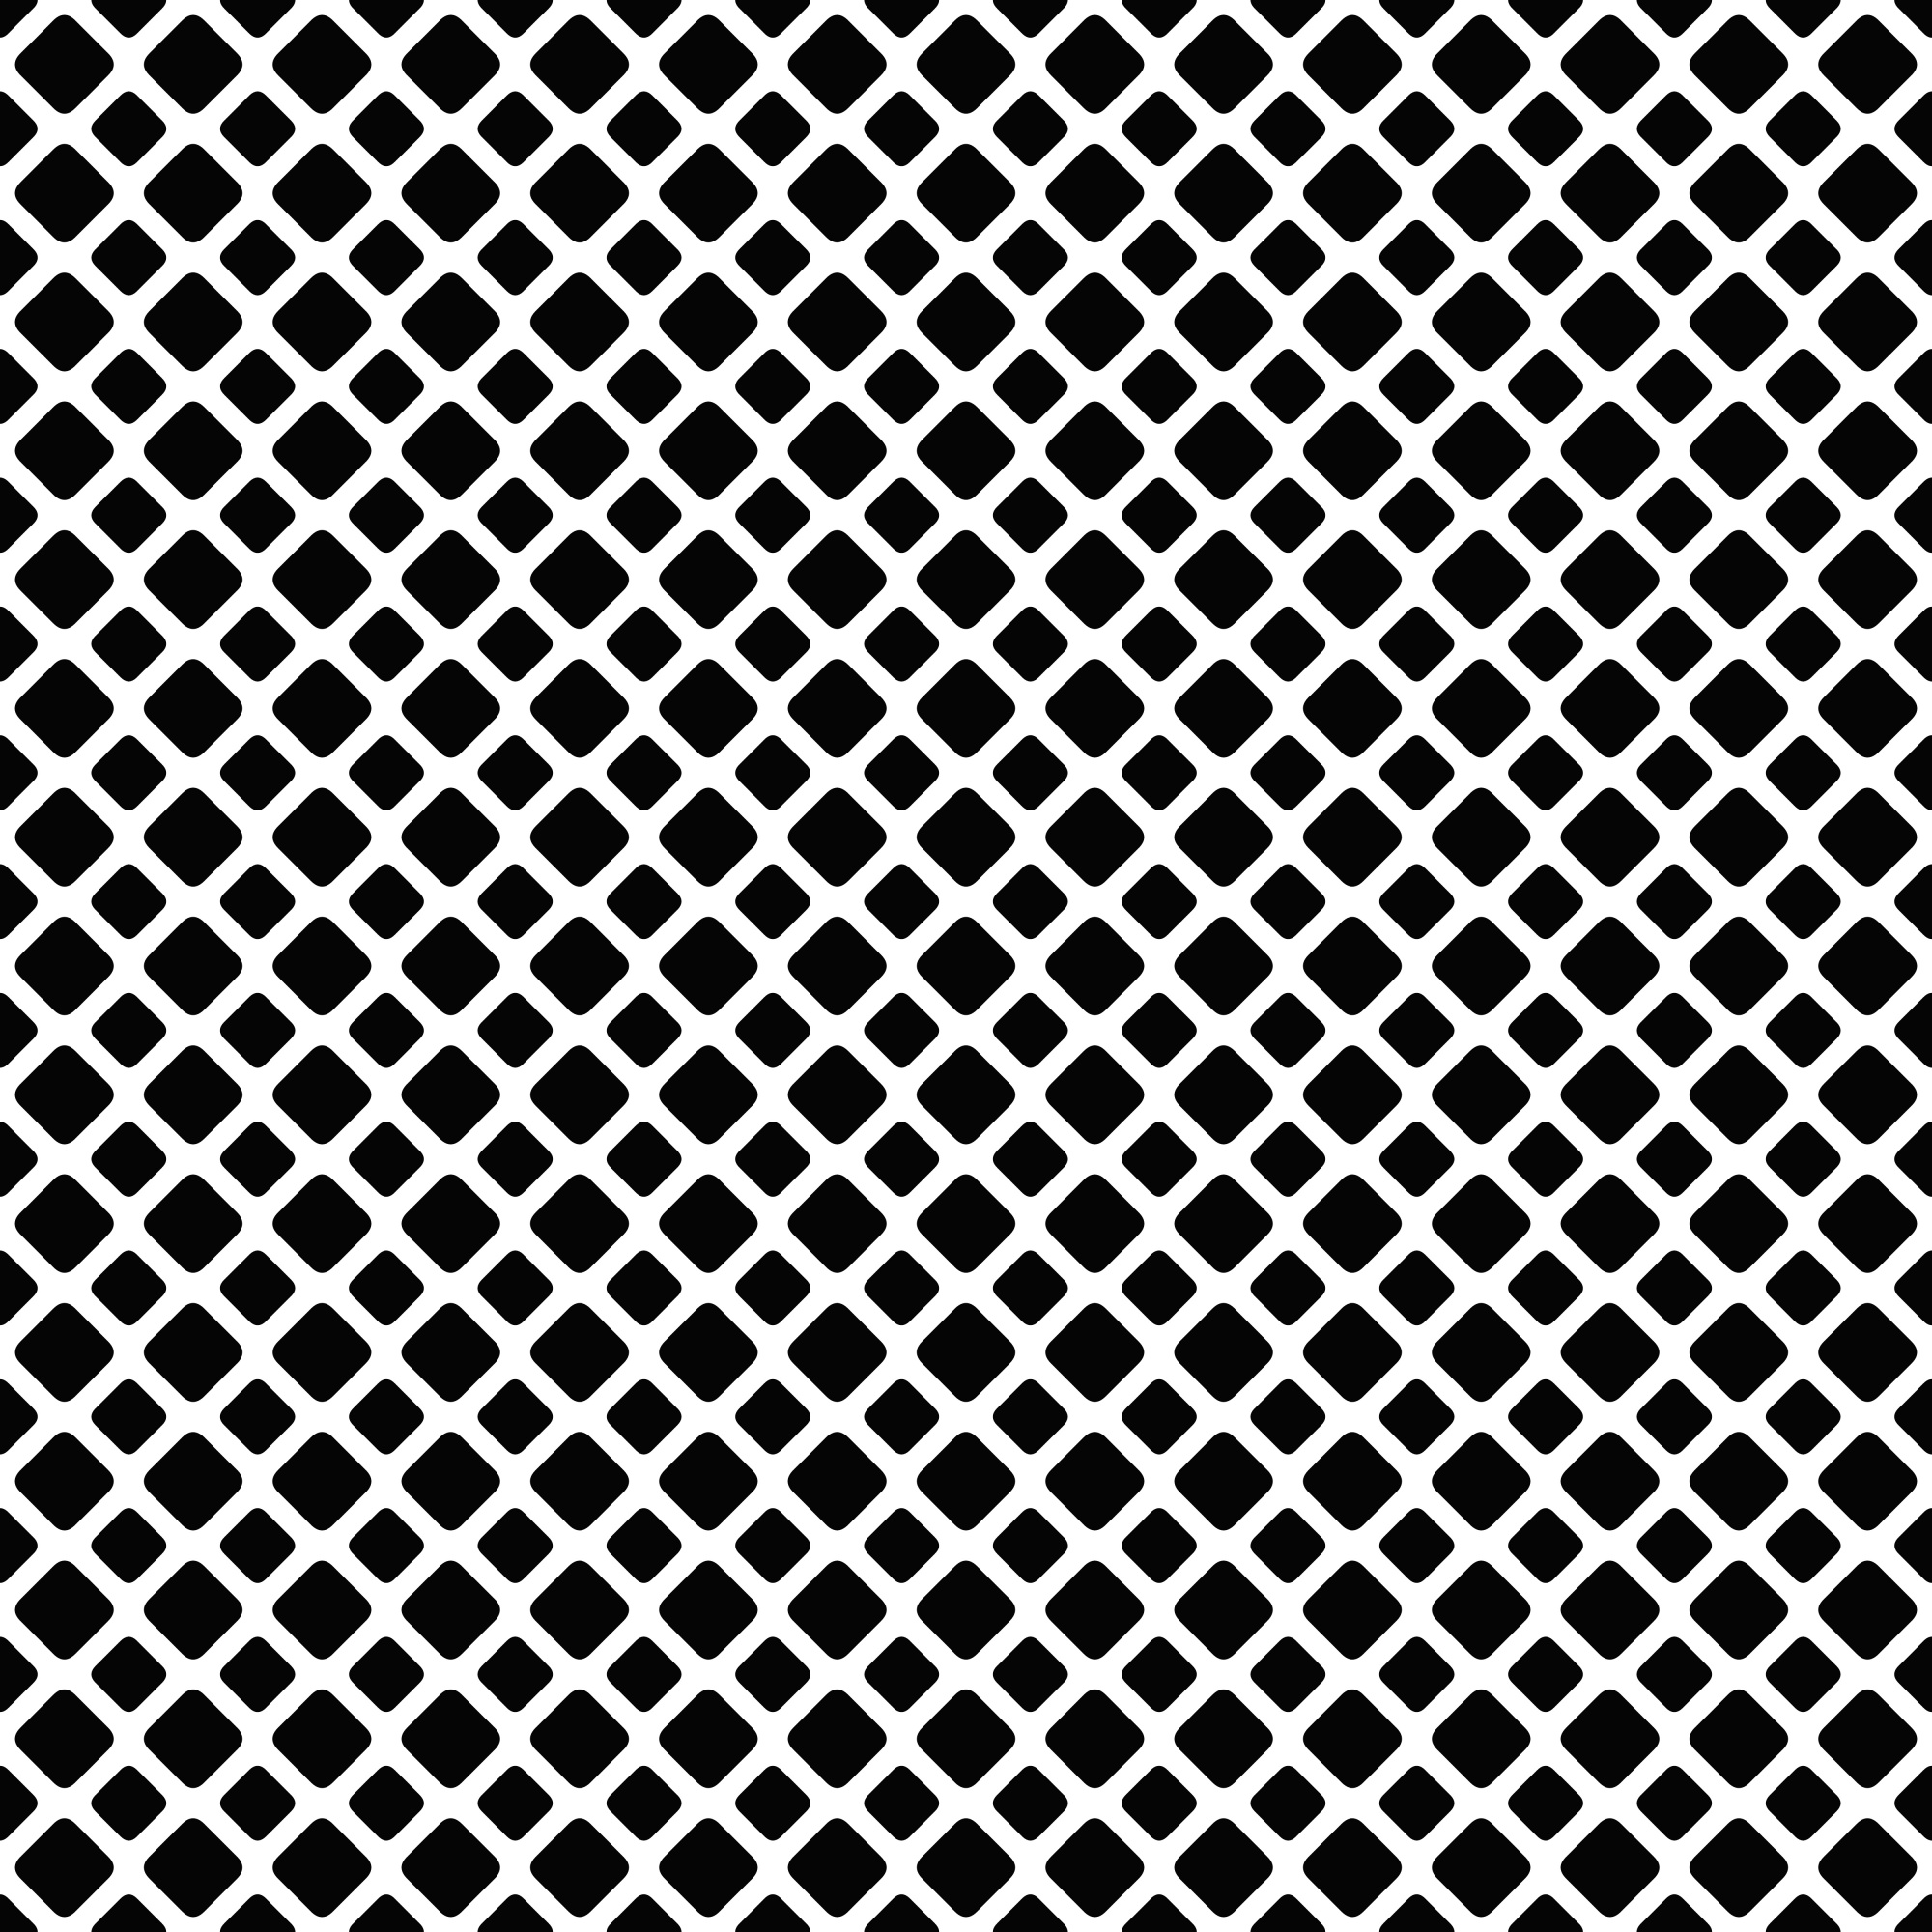 Seamless black and white diagonal square grid patter background - vector graphic design